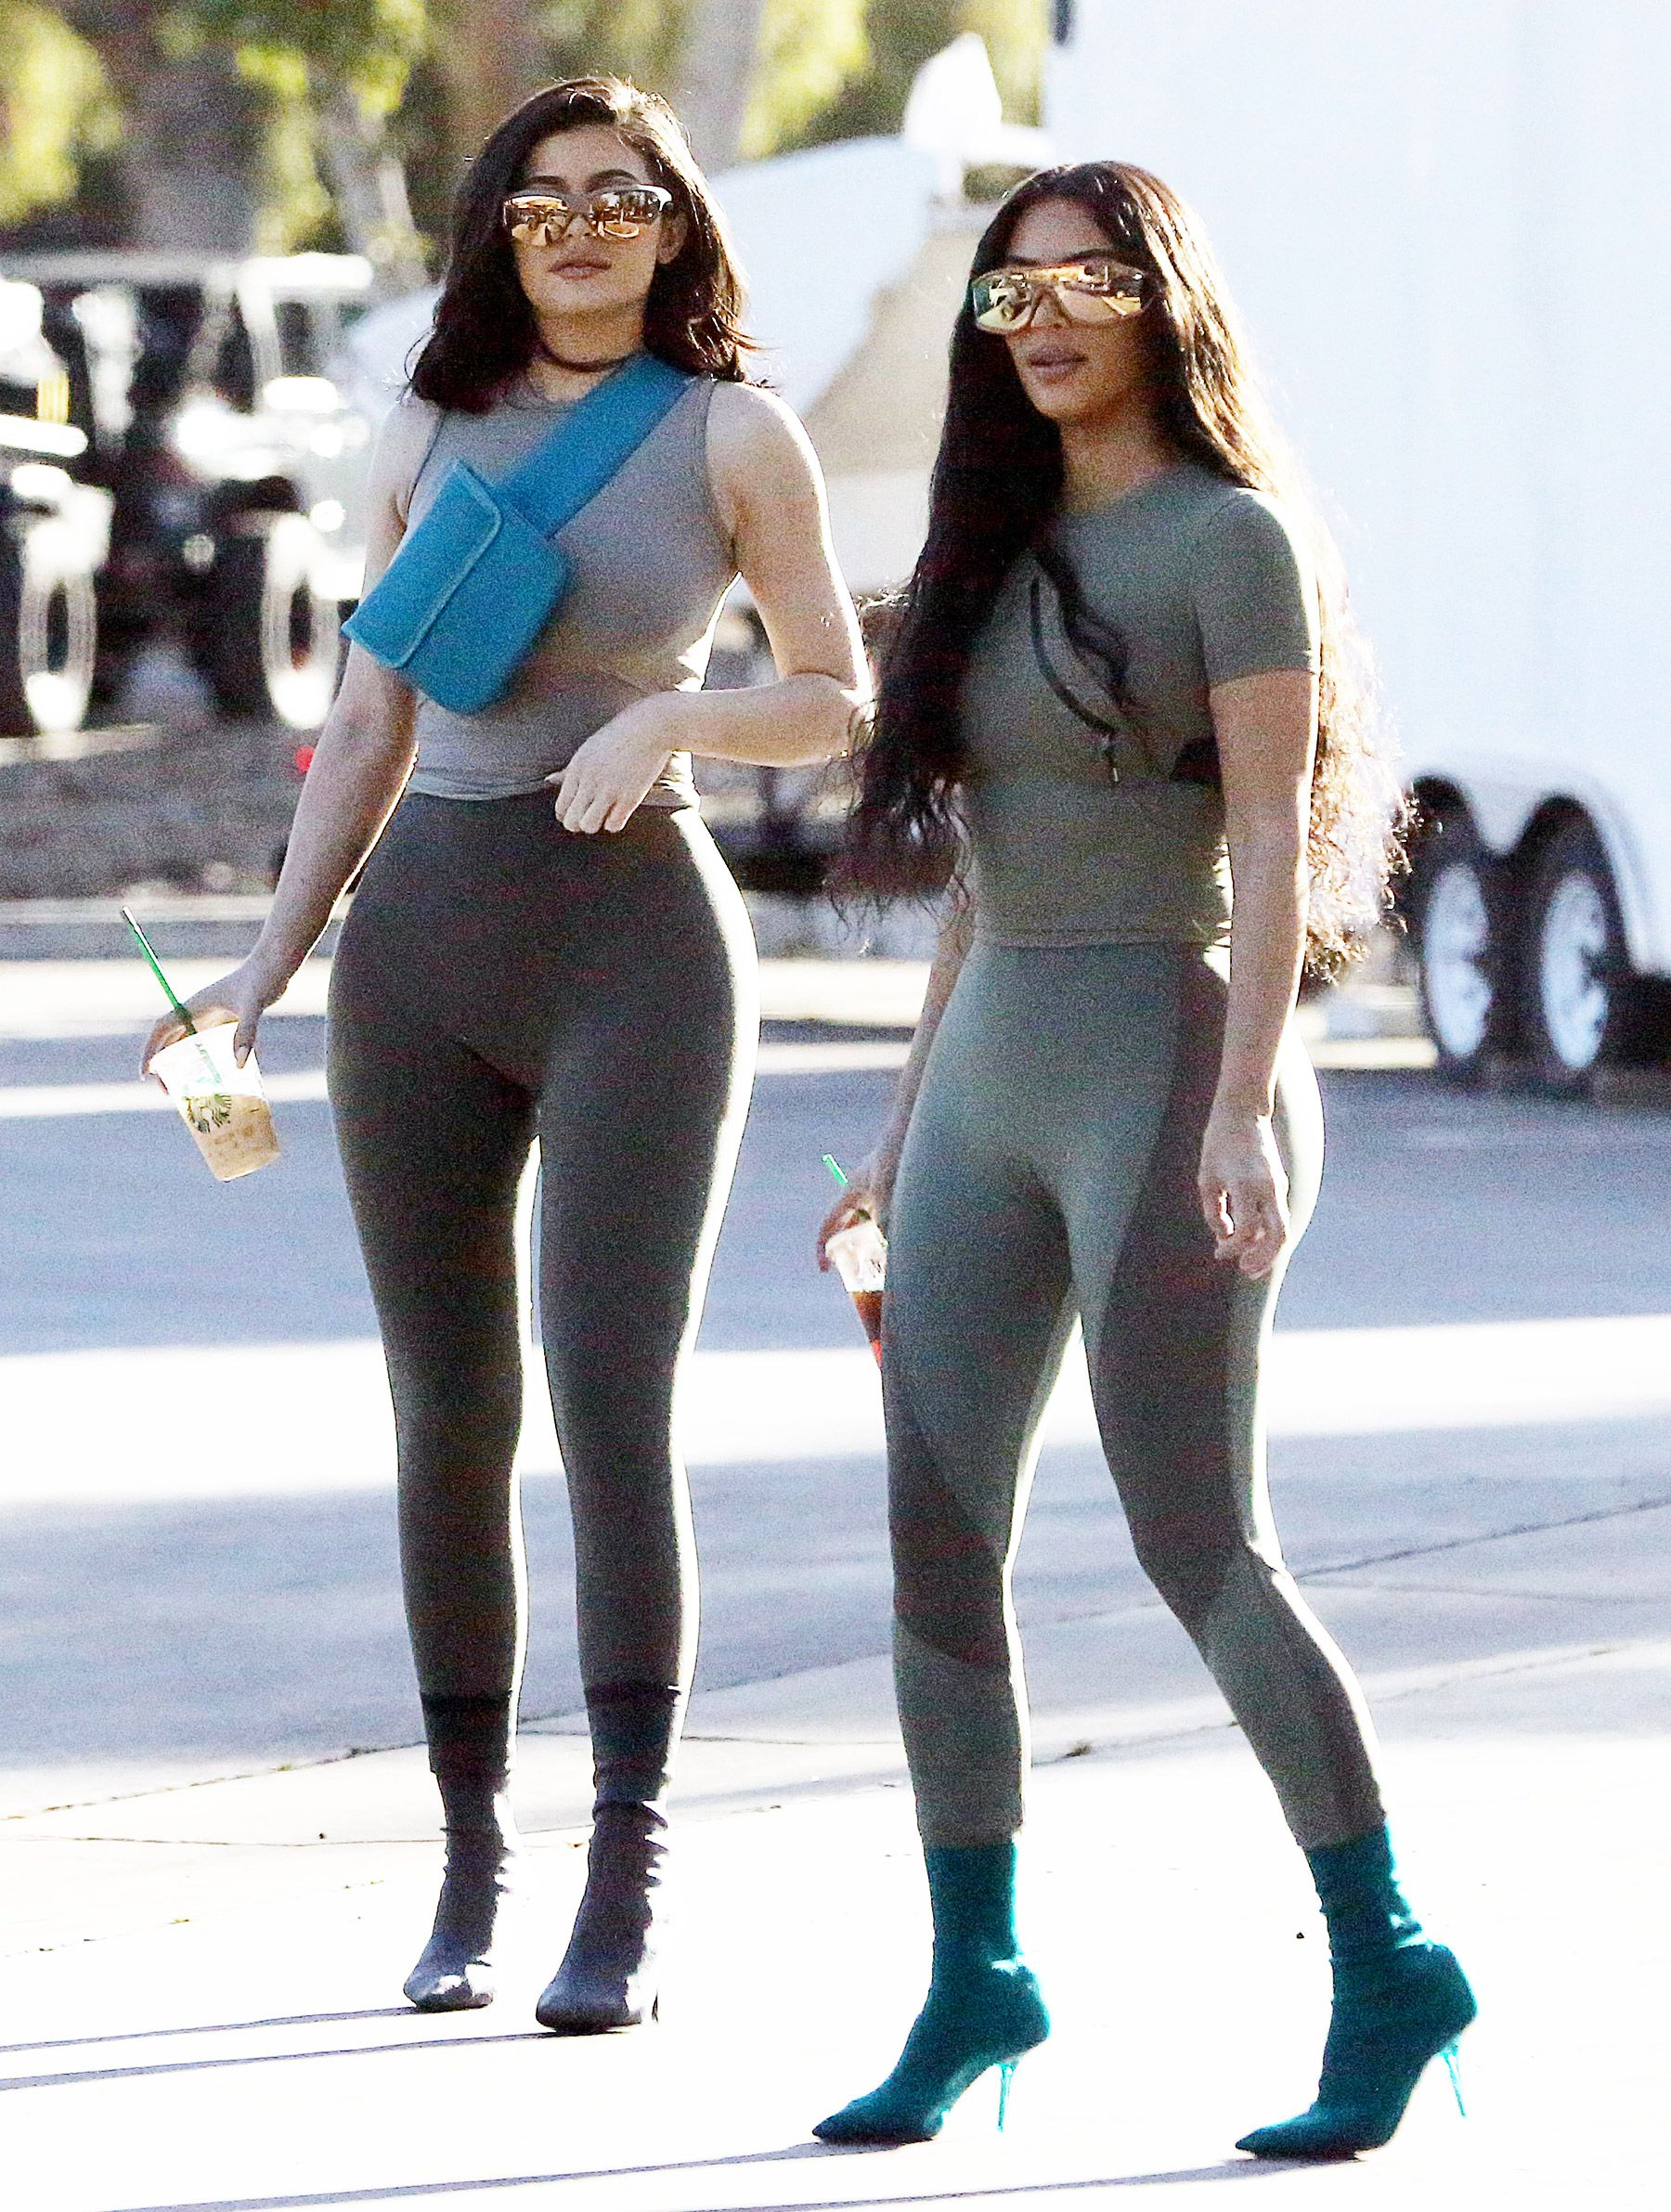 928da5f342 Kylie Jenner and Kim Kardashian Look Like Twins in Matching Spandex and  Crop Tops